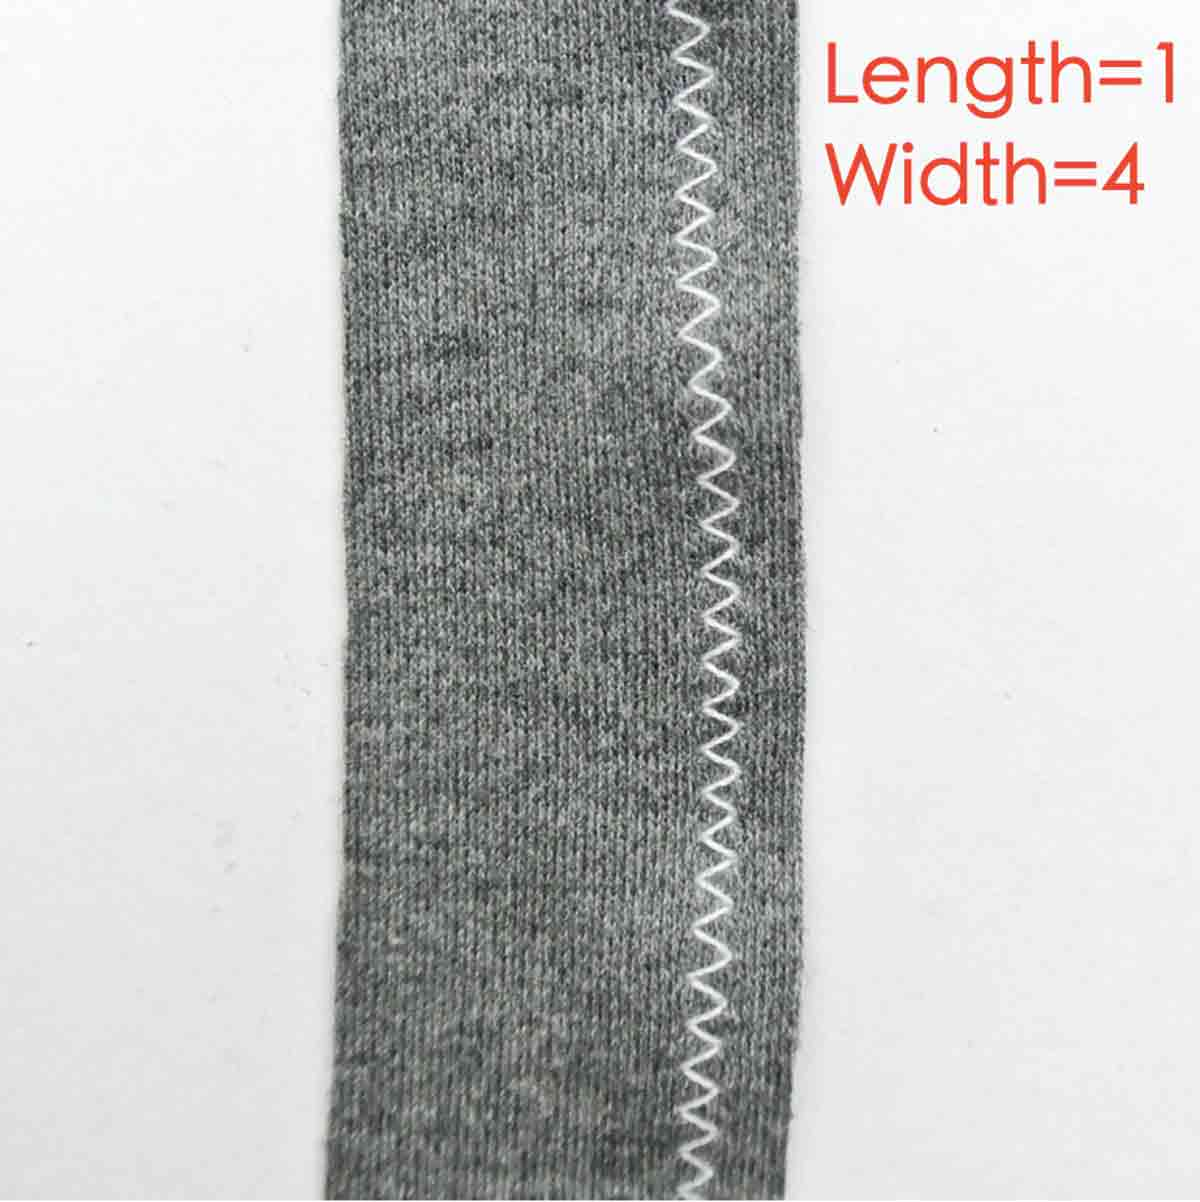 Short and wide zigzag stitch with length set at 1 and width set at 4